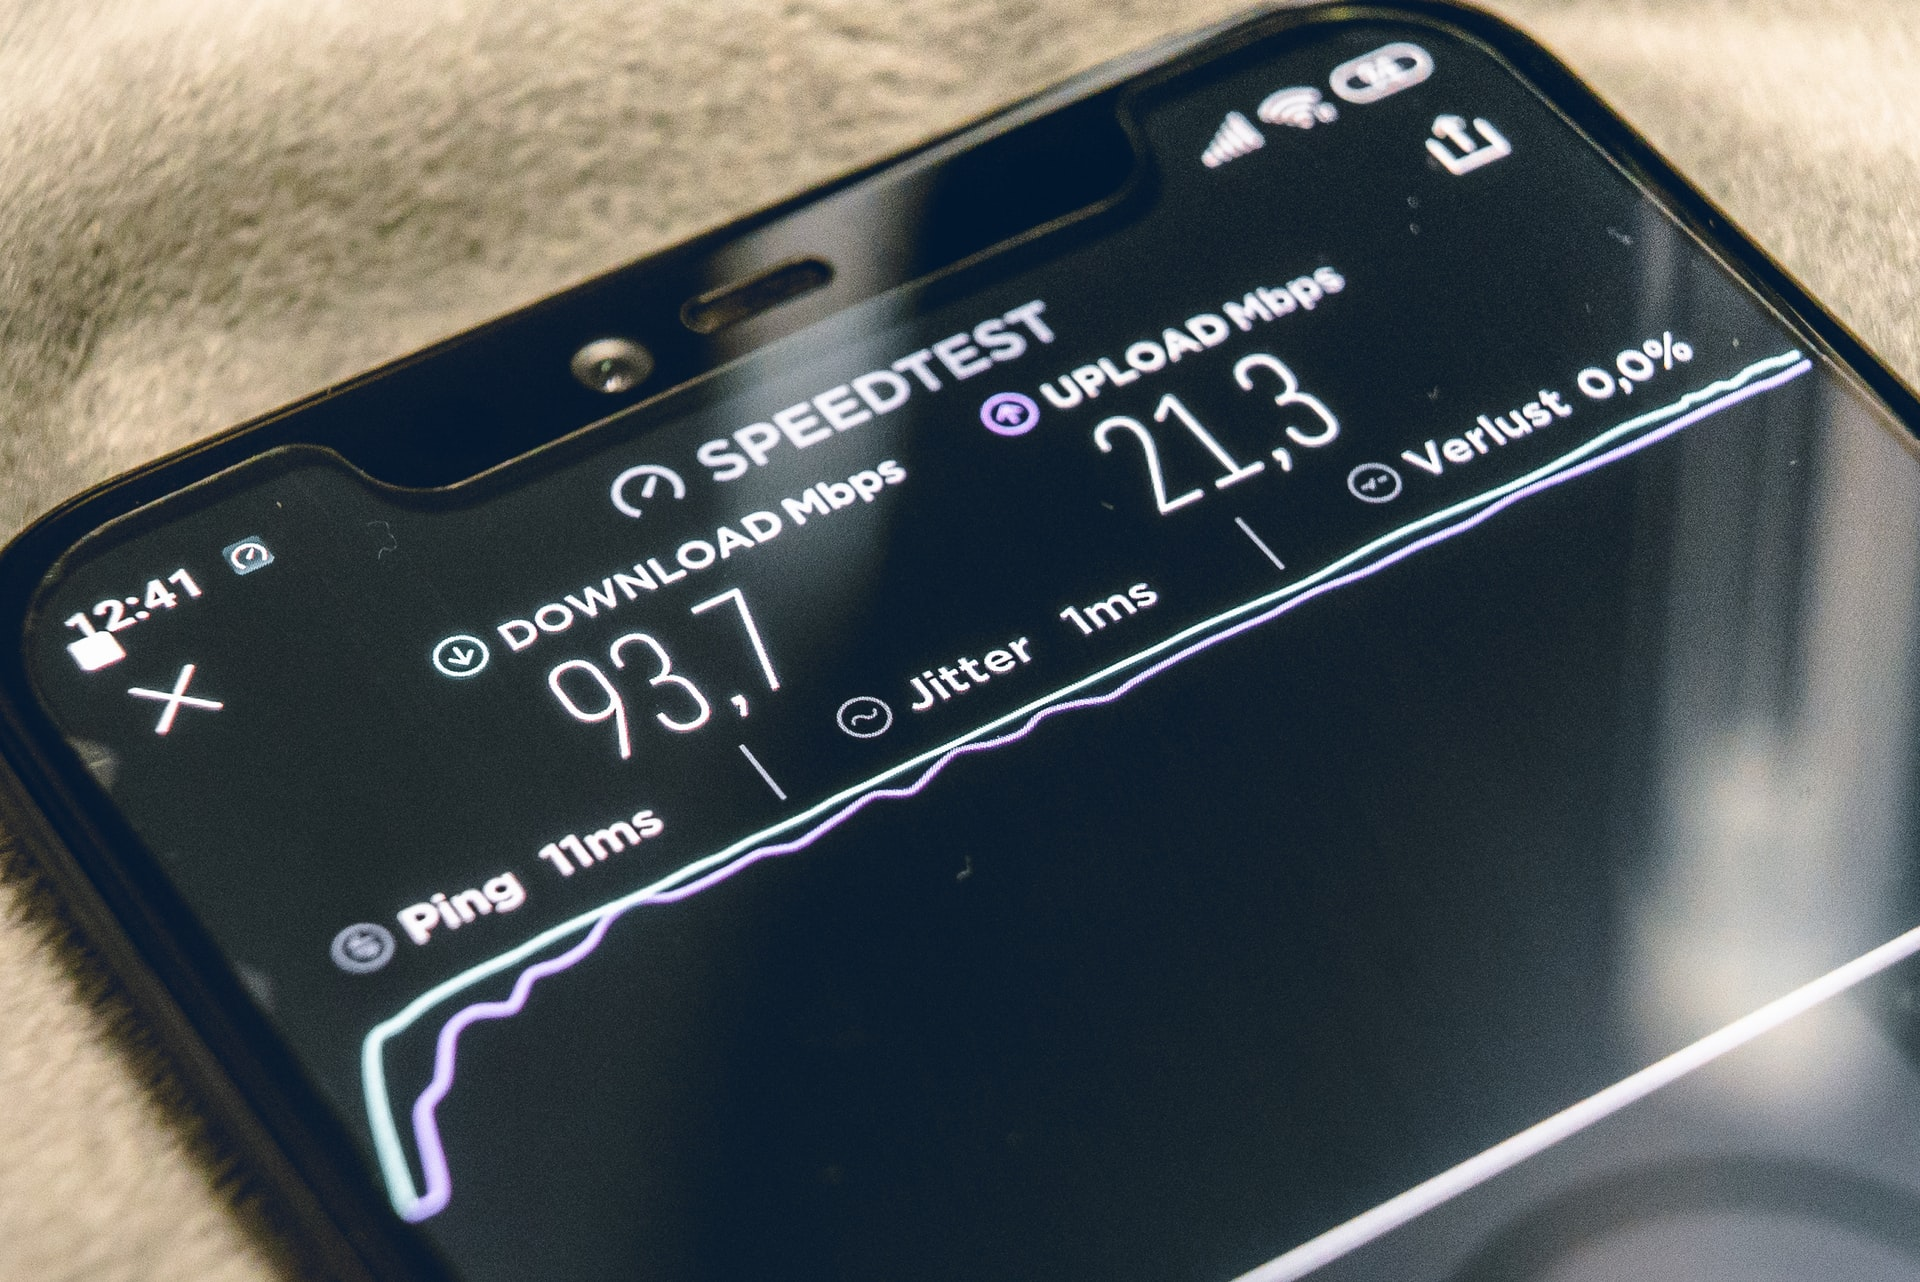 China, US, Canada Poised to Lead in 5G Spectrum brandspurng